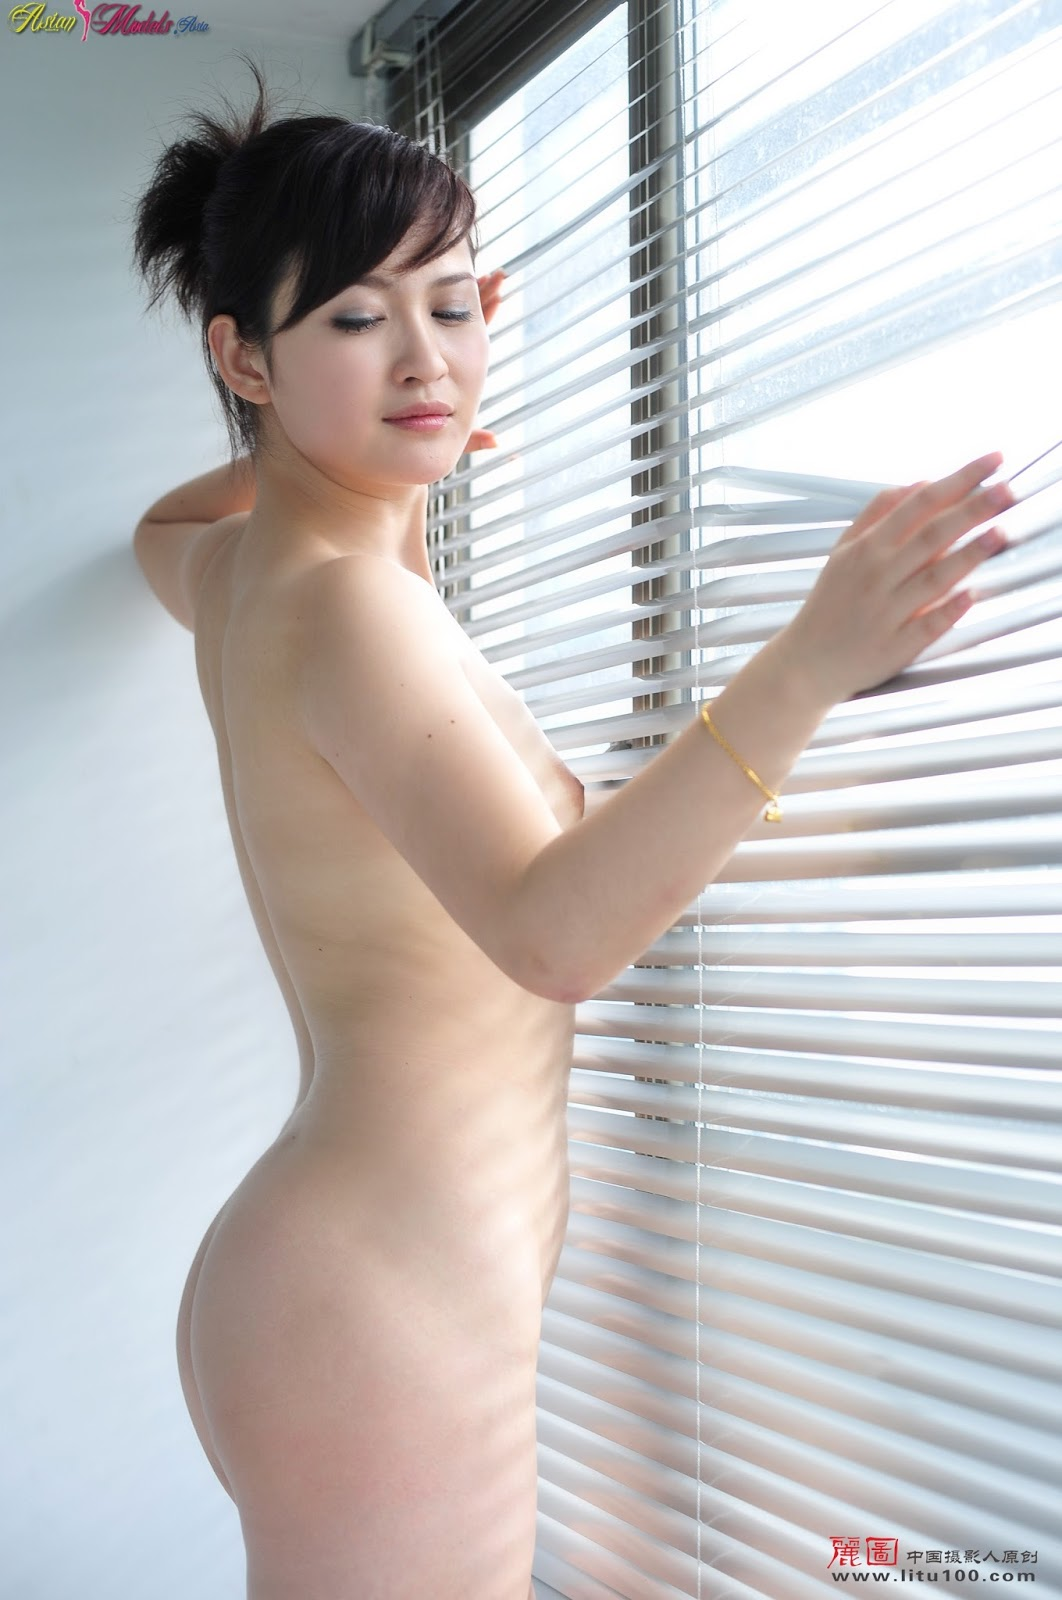 Chinese nudeModel  Keywords : Chinese Model Judy, Chinese girl judy, LiTU100 Model photo  gallery, Chinese Models photo gallery, Chinese Nude Models, Goumo photo  gallery, ...